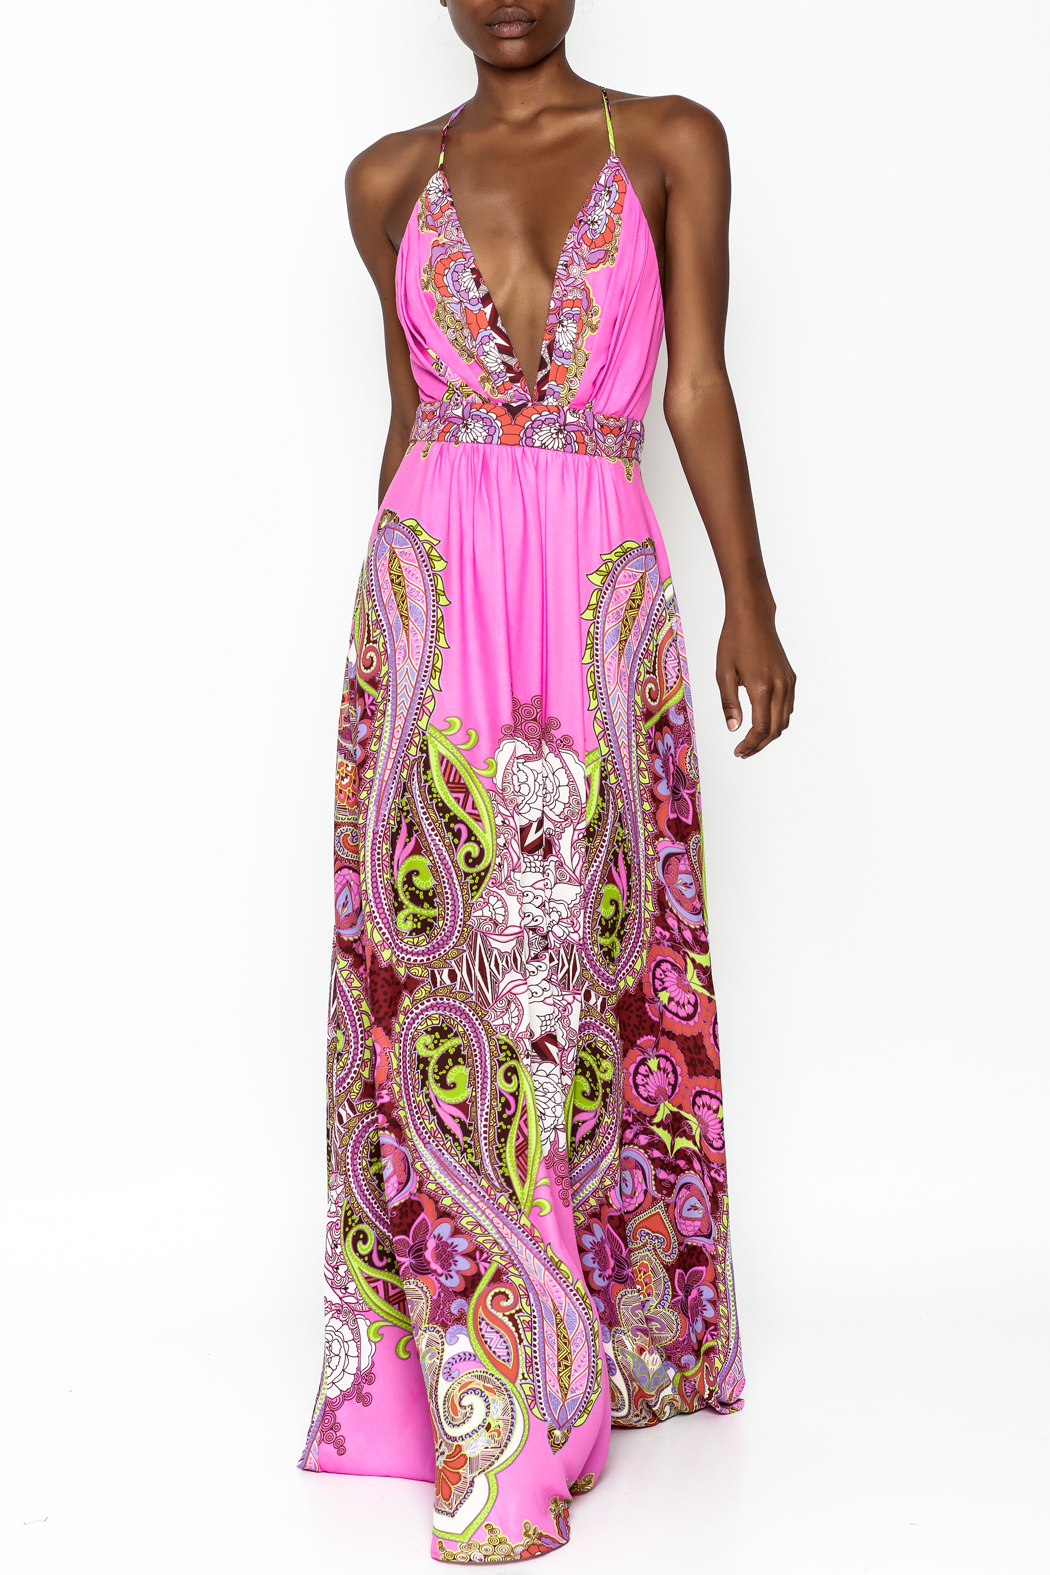 LIFTED Boutique Pink Maxi Dress - Main Image